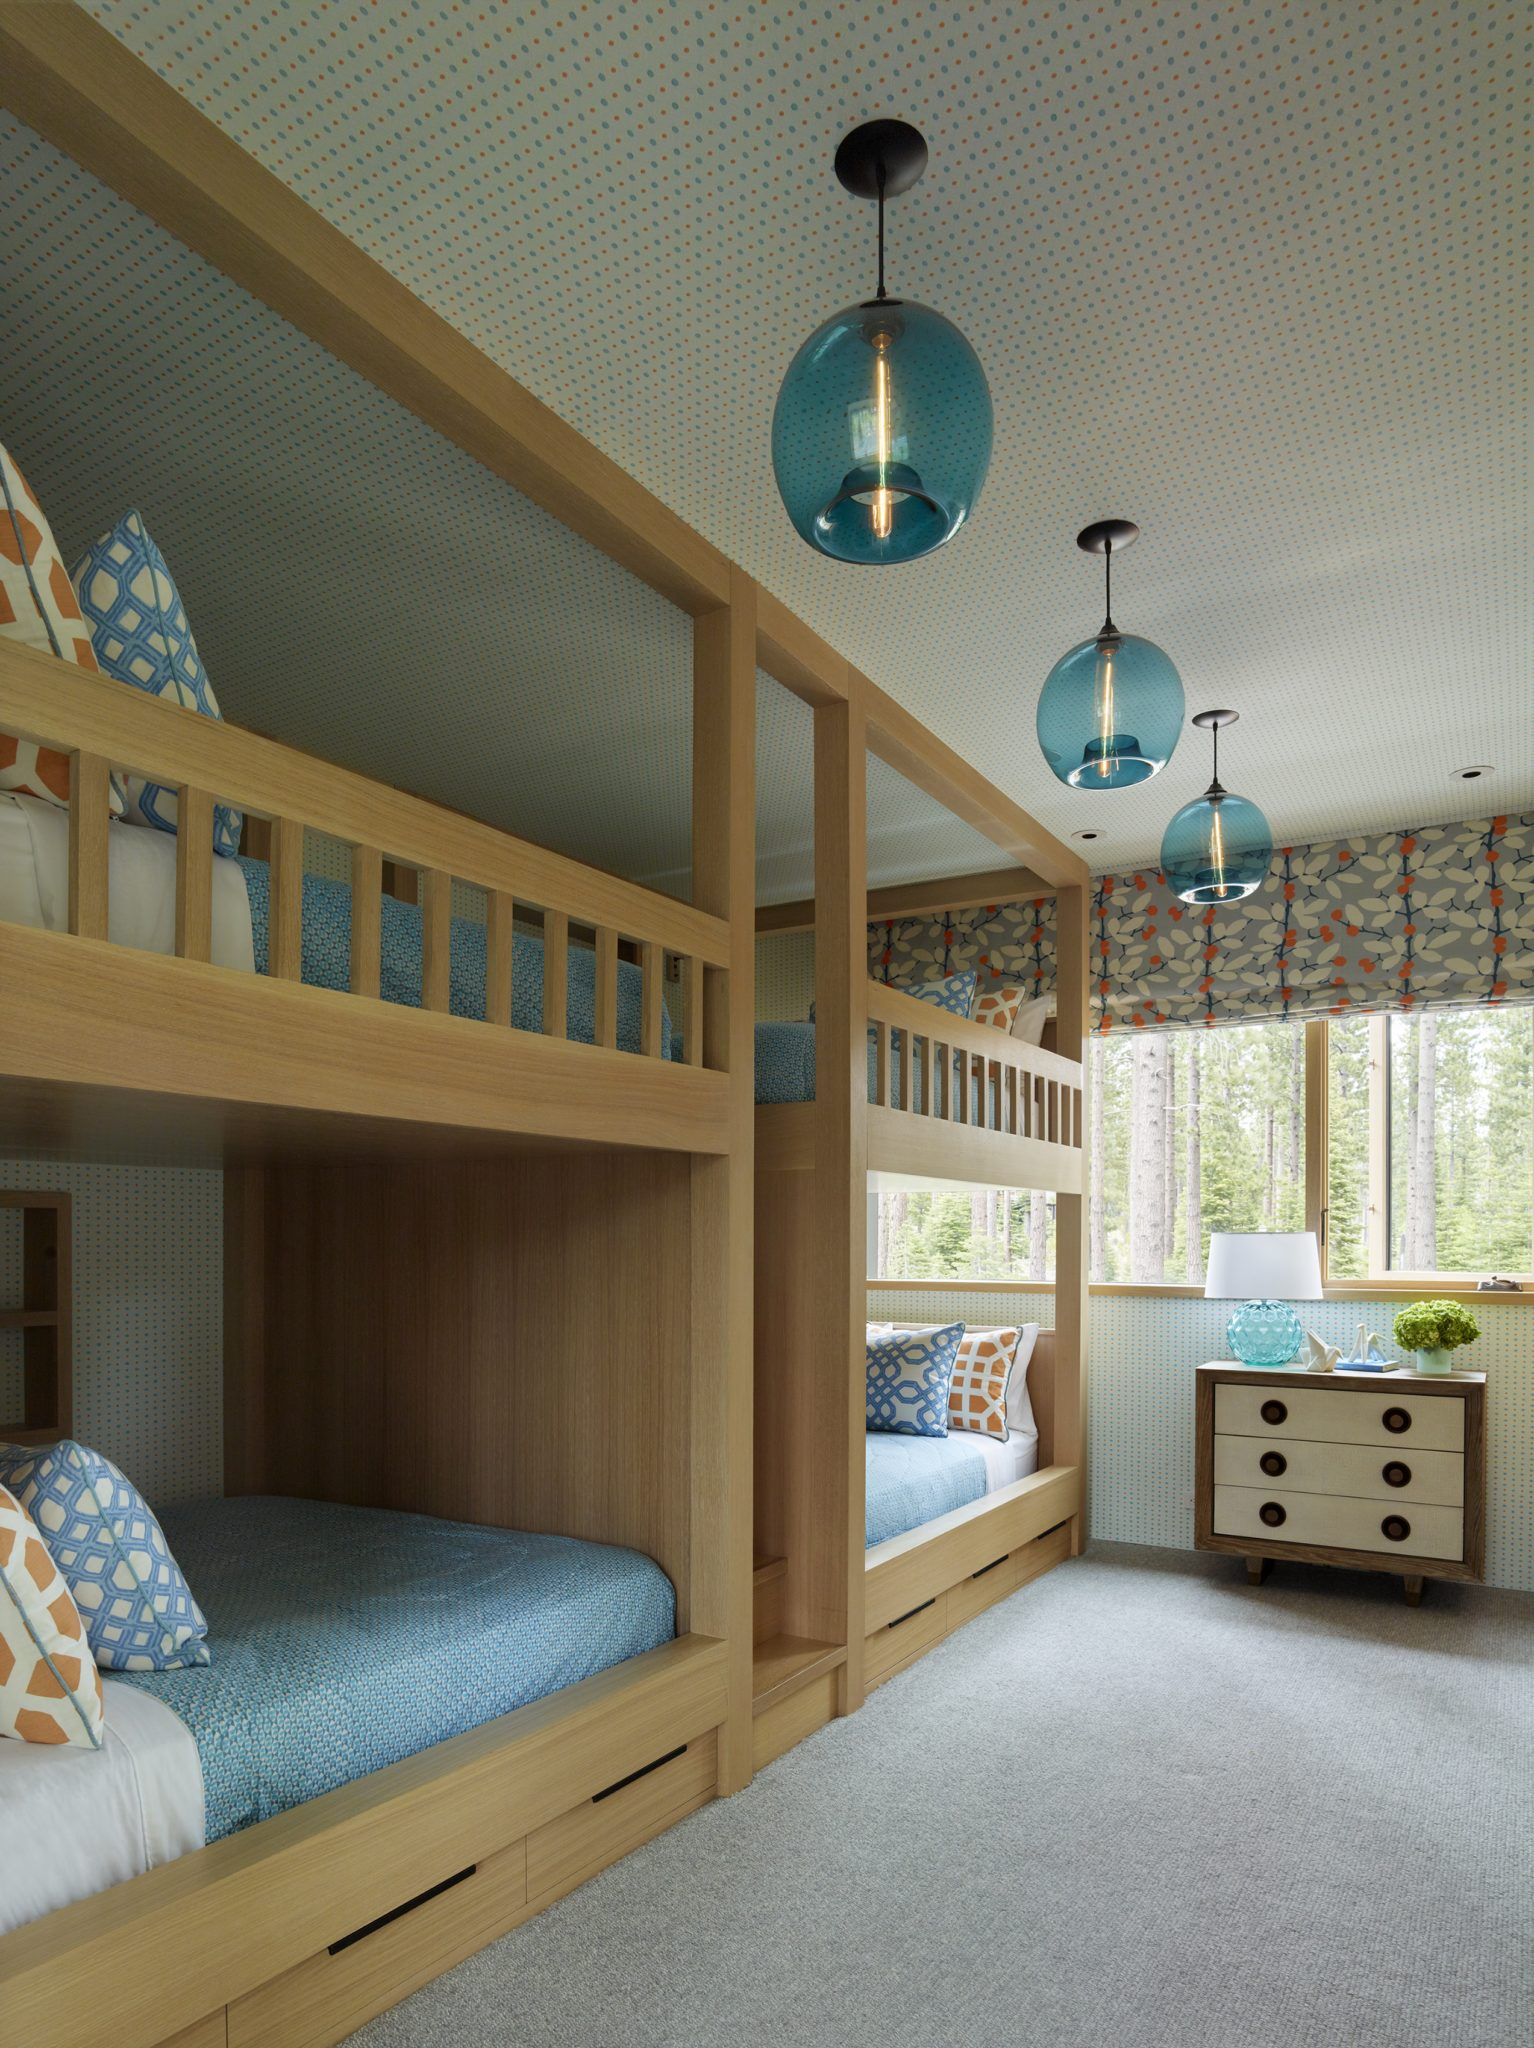 In the children's room, theoak bunk beds are a customdesign, the pendant lights are by Niche Modern, the chest of drawers is by Studio A, and the carpetis by Floordesign, Inc.